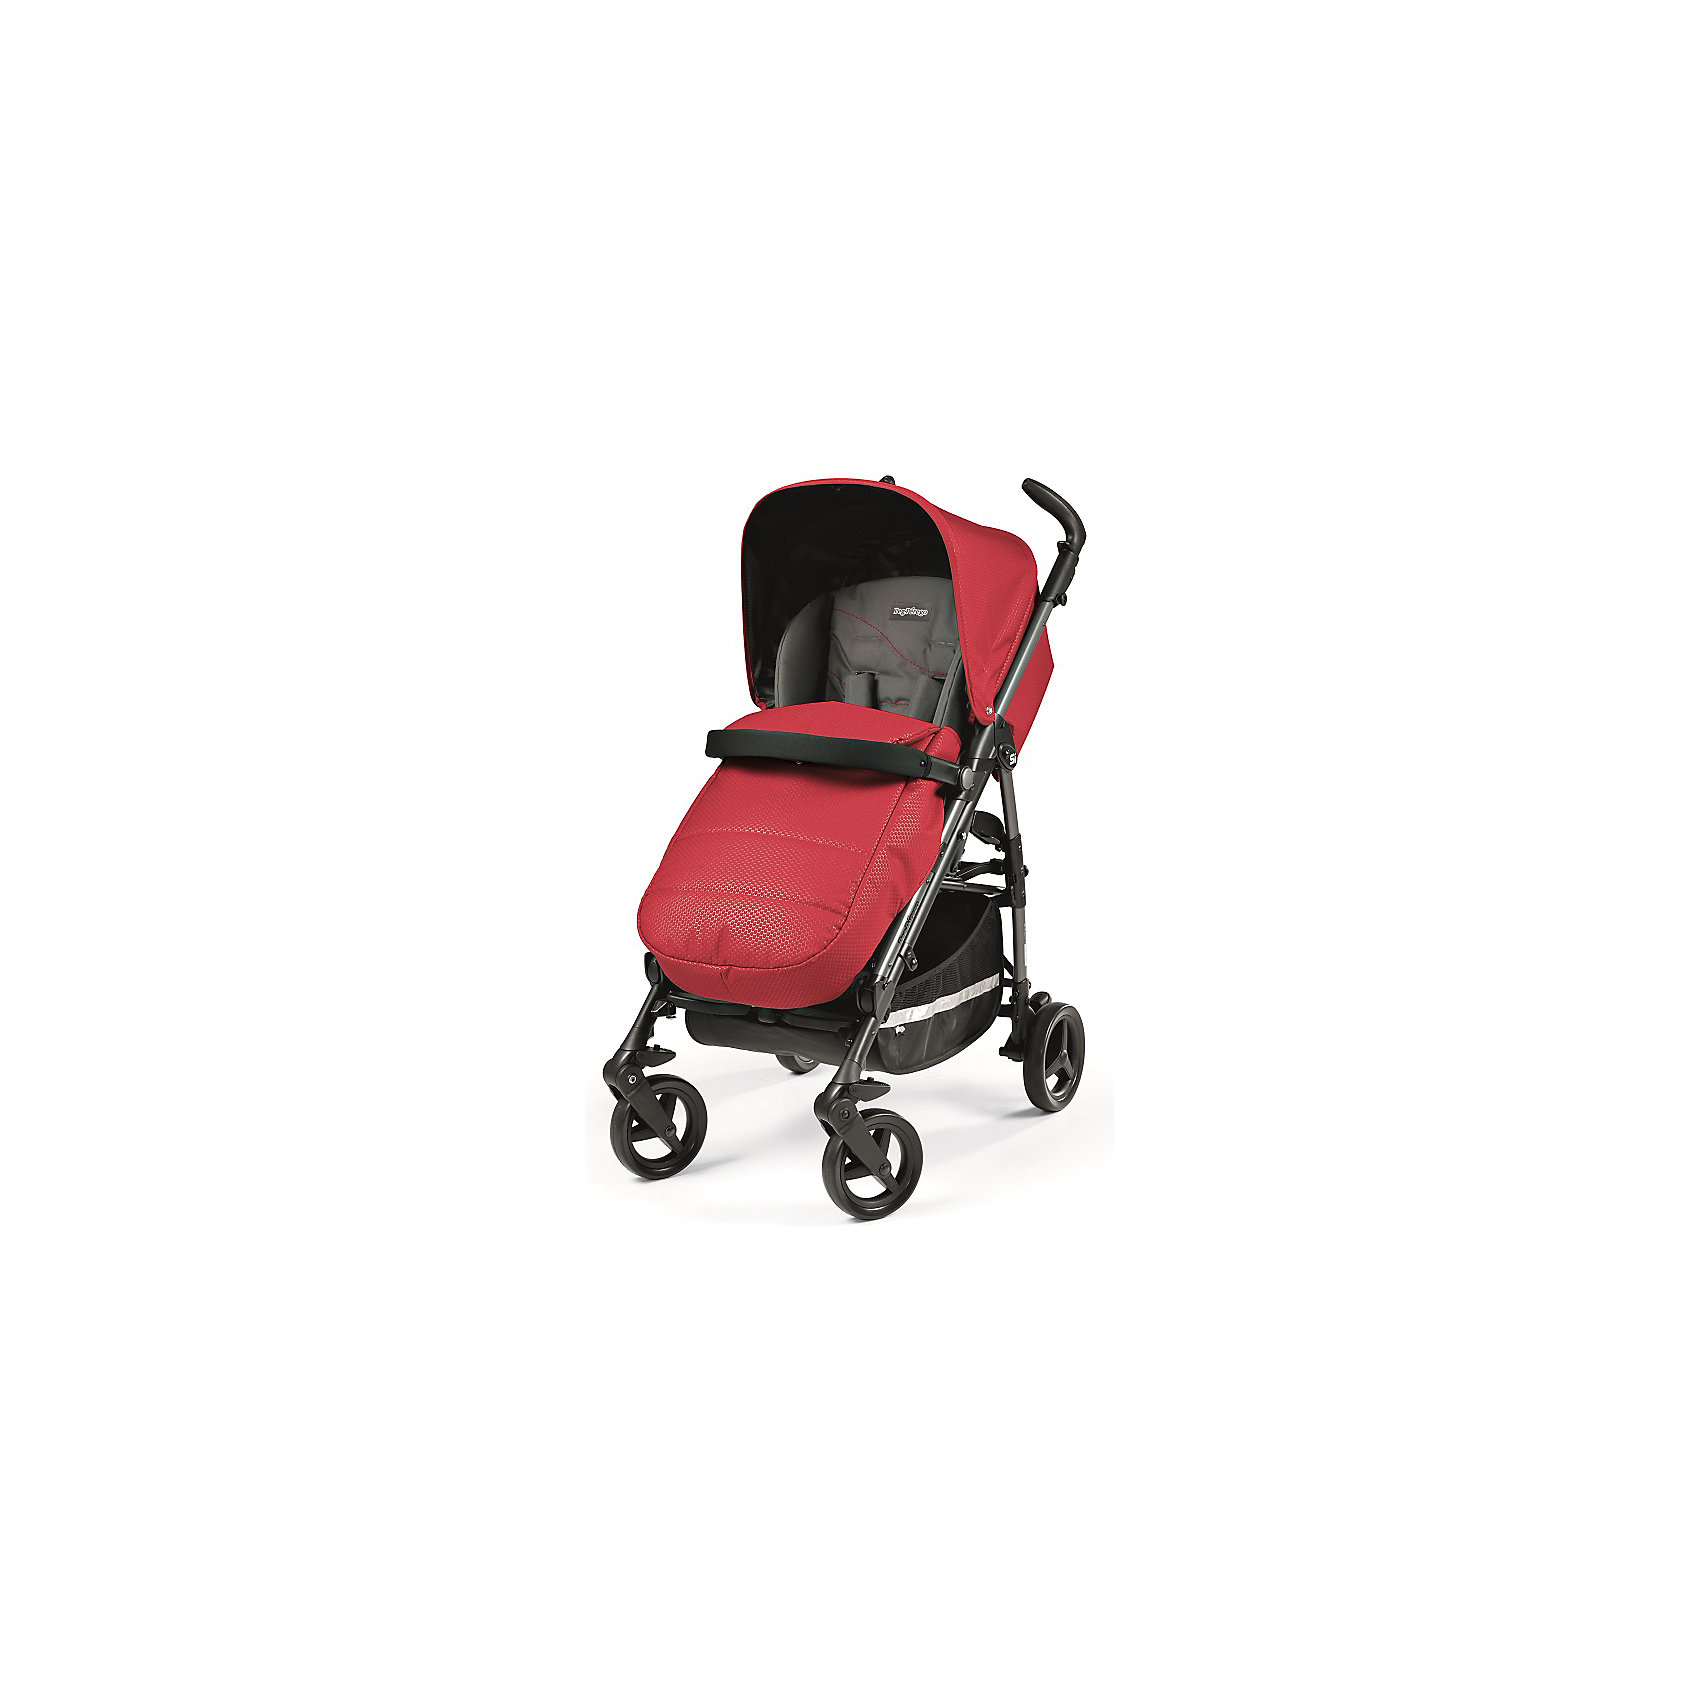 Peg Perego Коляска-трость Peg-Perego Si Completo, Bloom Red